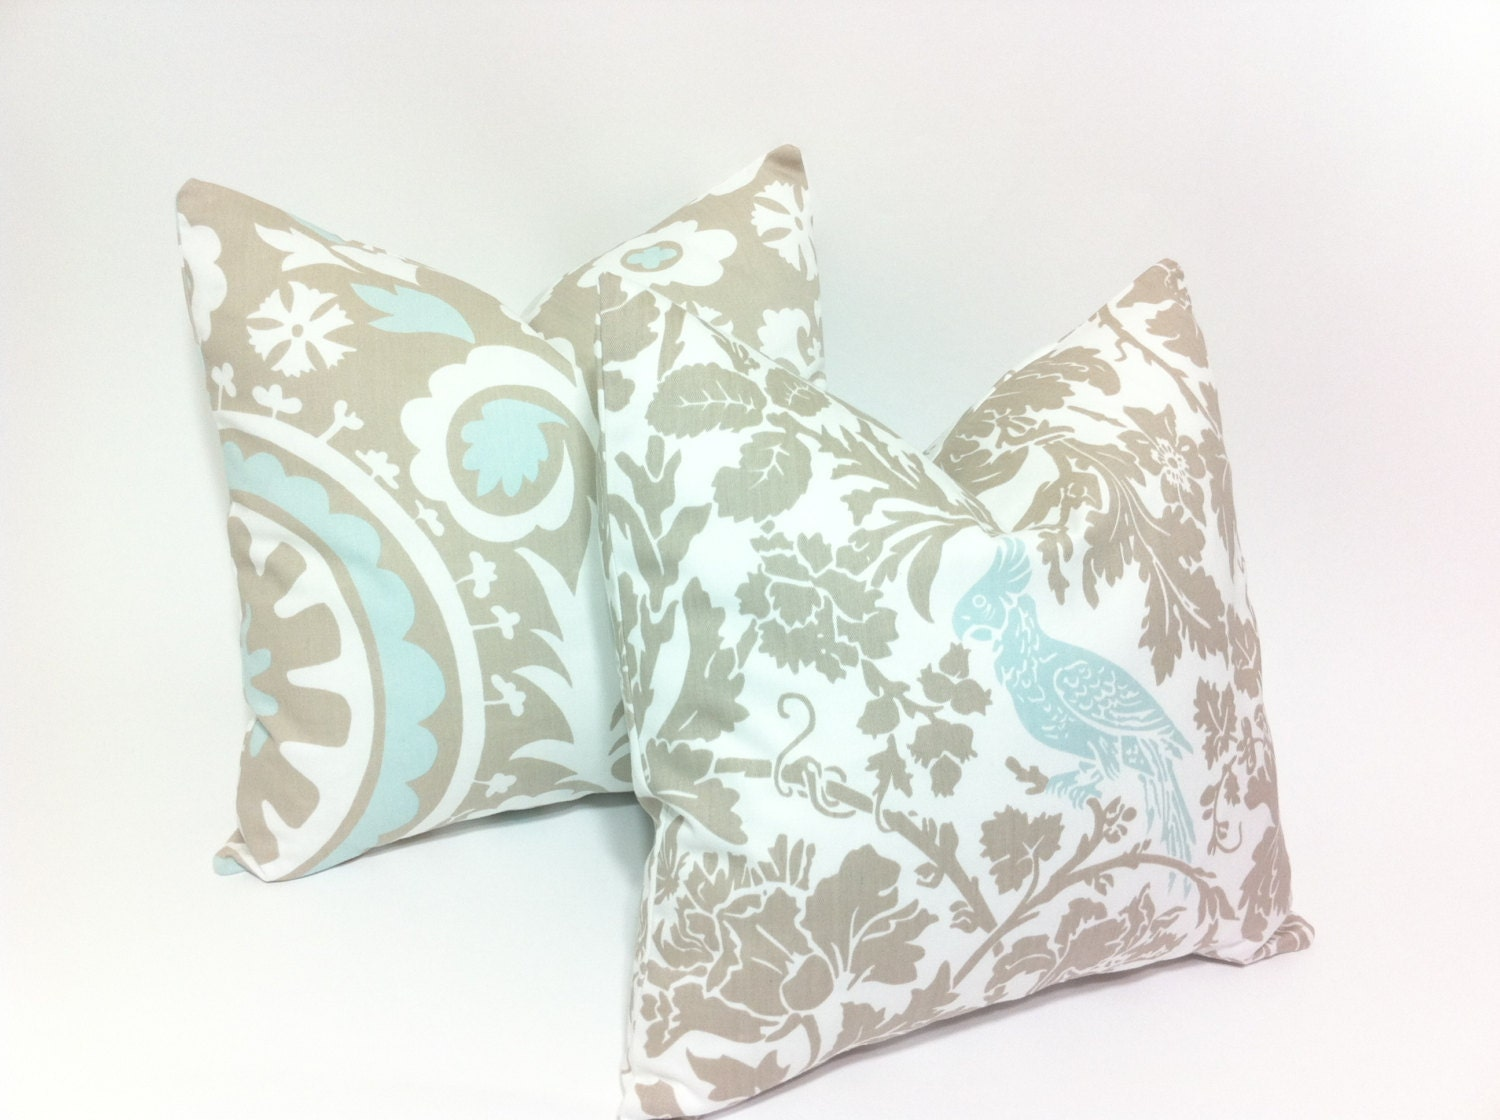 Light Blue Throw Pillow Covers : Light Blue and Taupe Decorative Throw Pillow Covers Bird